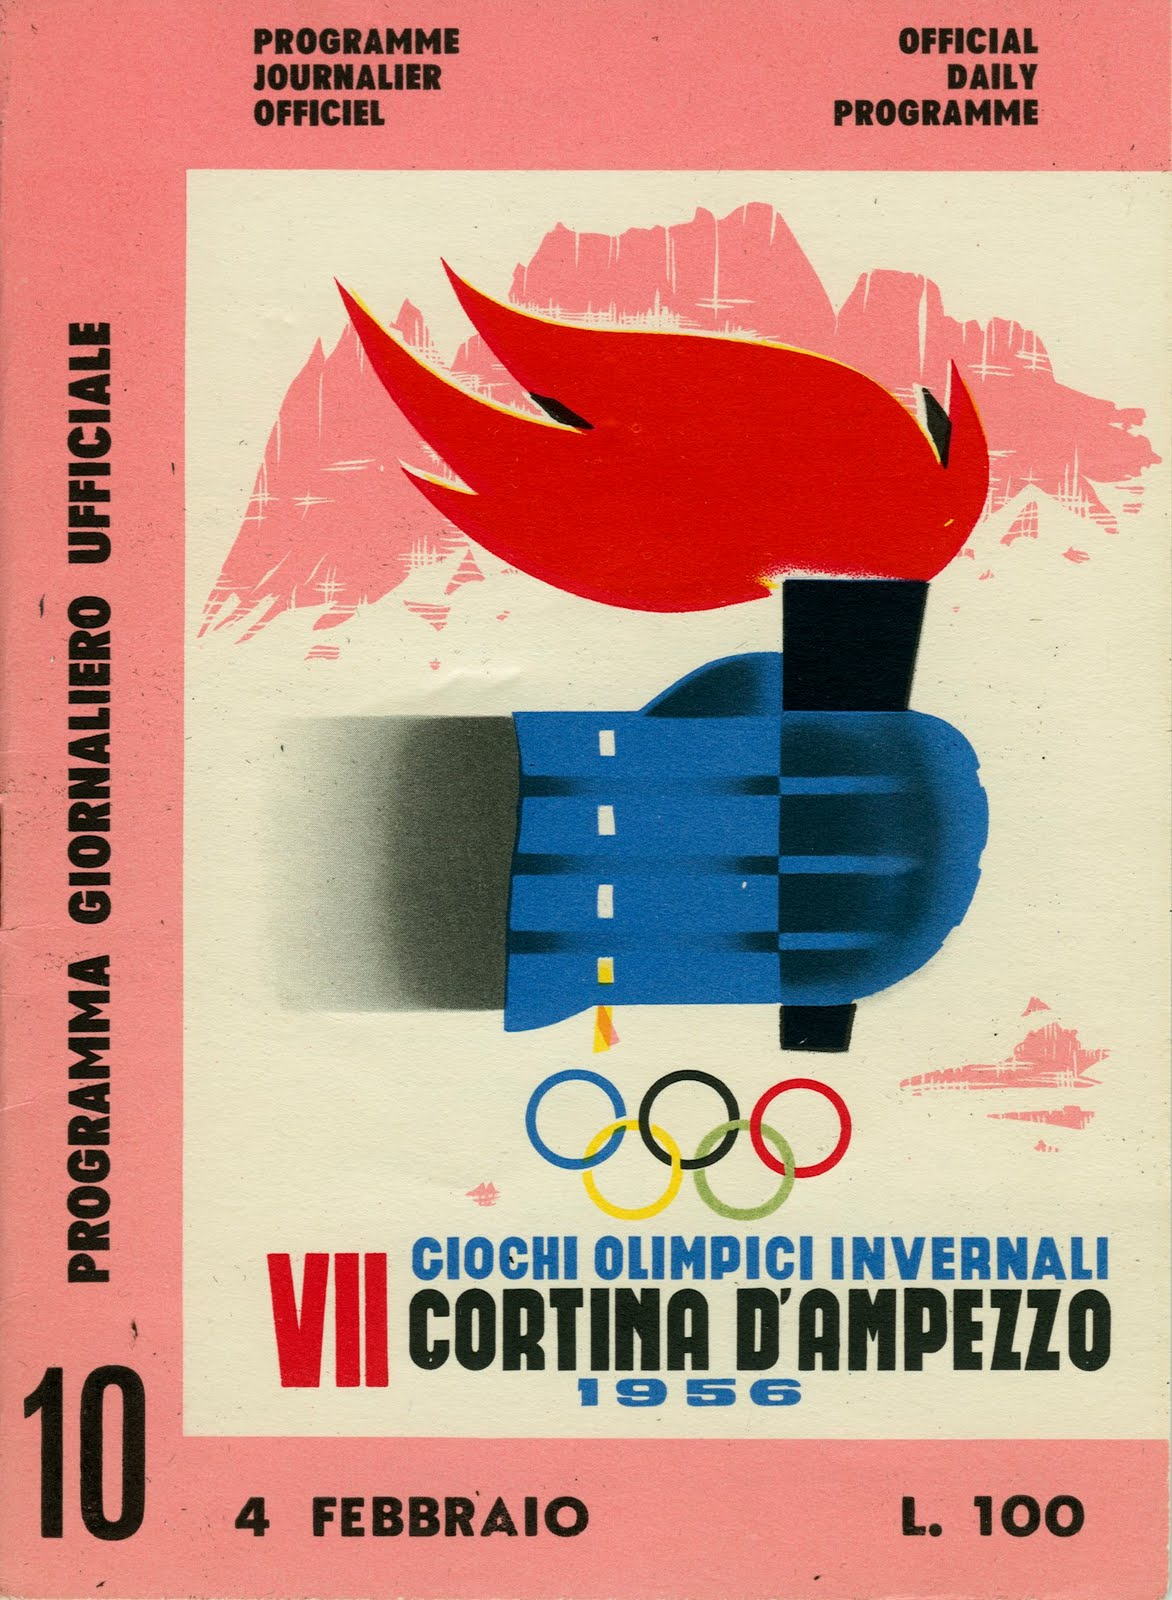 1956-Winter-Olympic-Games-Italy-Cortina-dAmpezzo